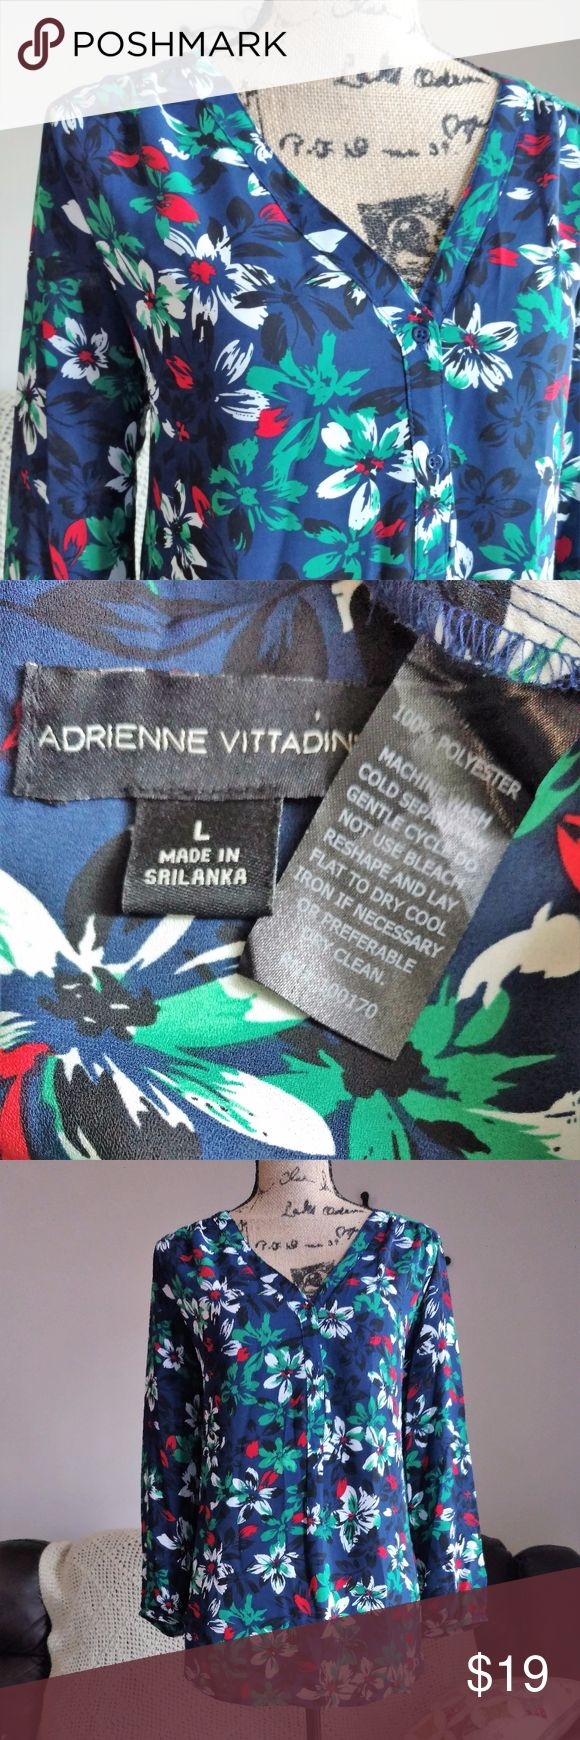 Floral Adrienne Vittadini Blouse size L VERY gently pre-loved Adrienne Vittadini bold floral top. No holes, flaws, or stains.  SUPER fast same day or next business day shipping! Adrienne Vittadini Tops